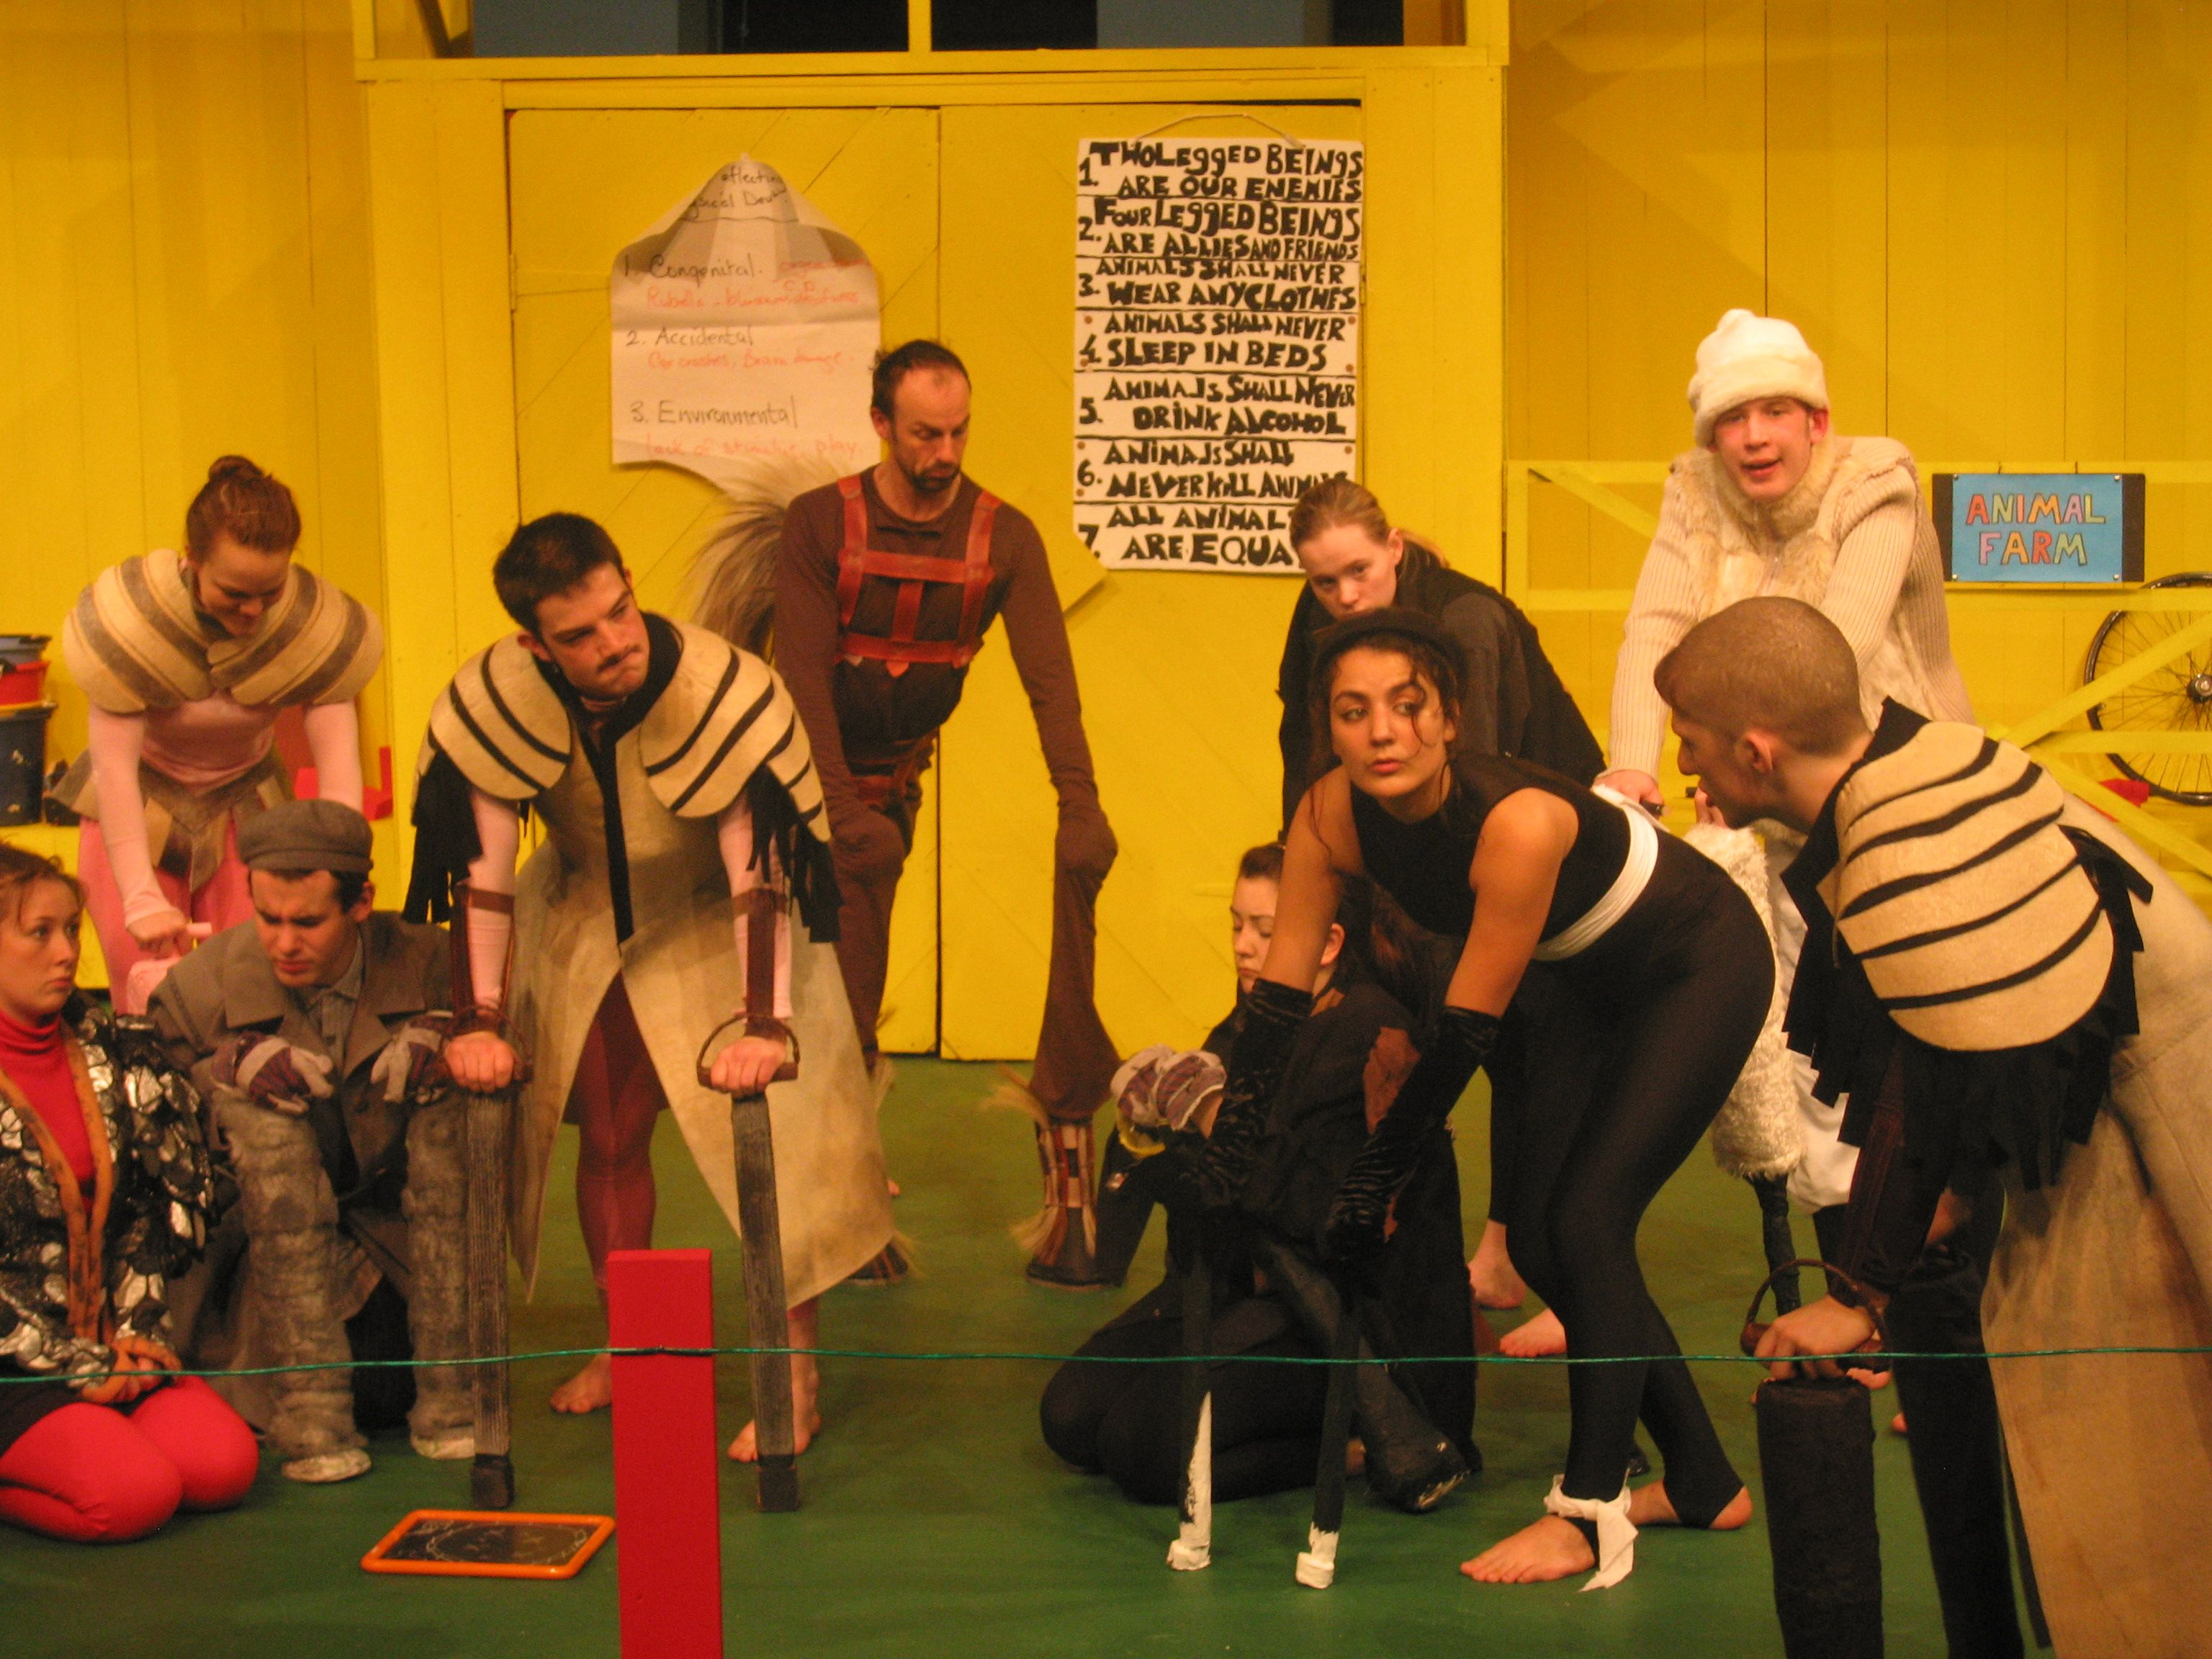 'Animal Farm' performed by students at Glasgow Clyde College.